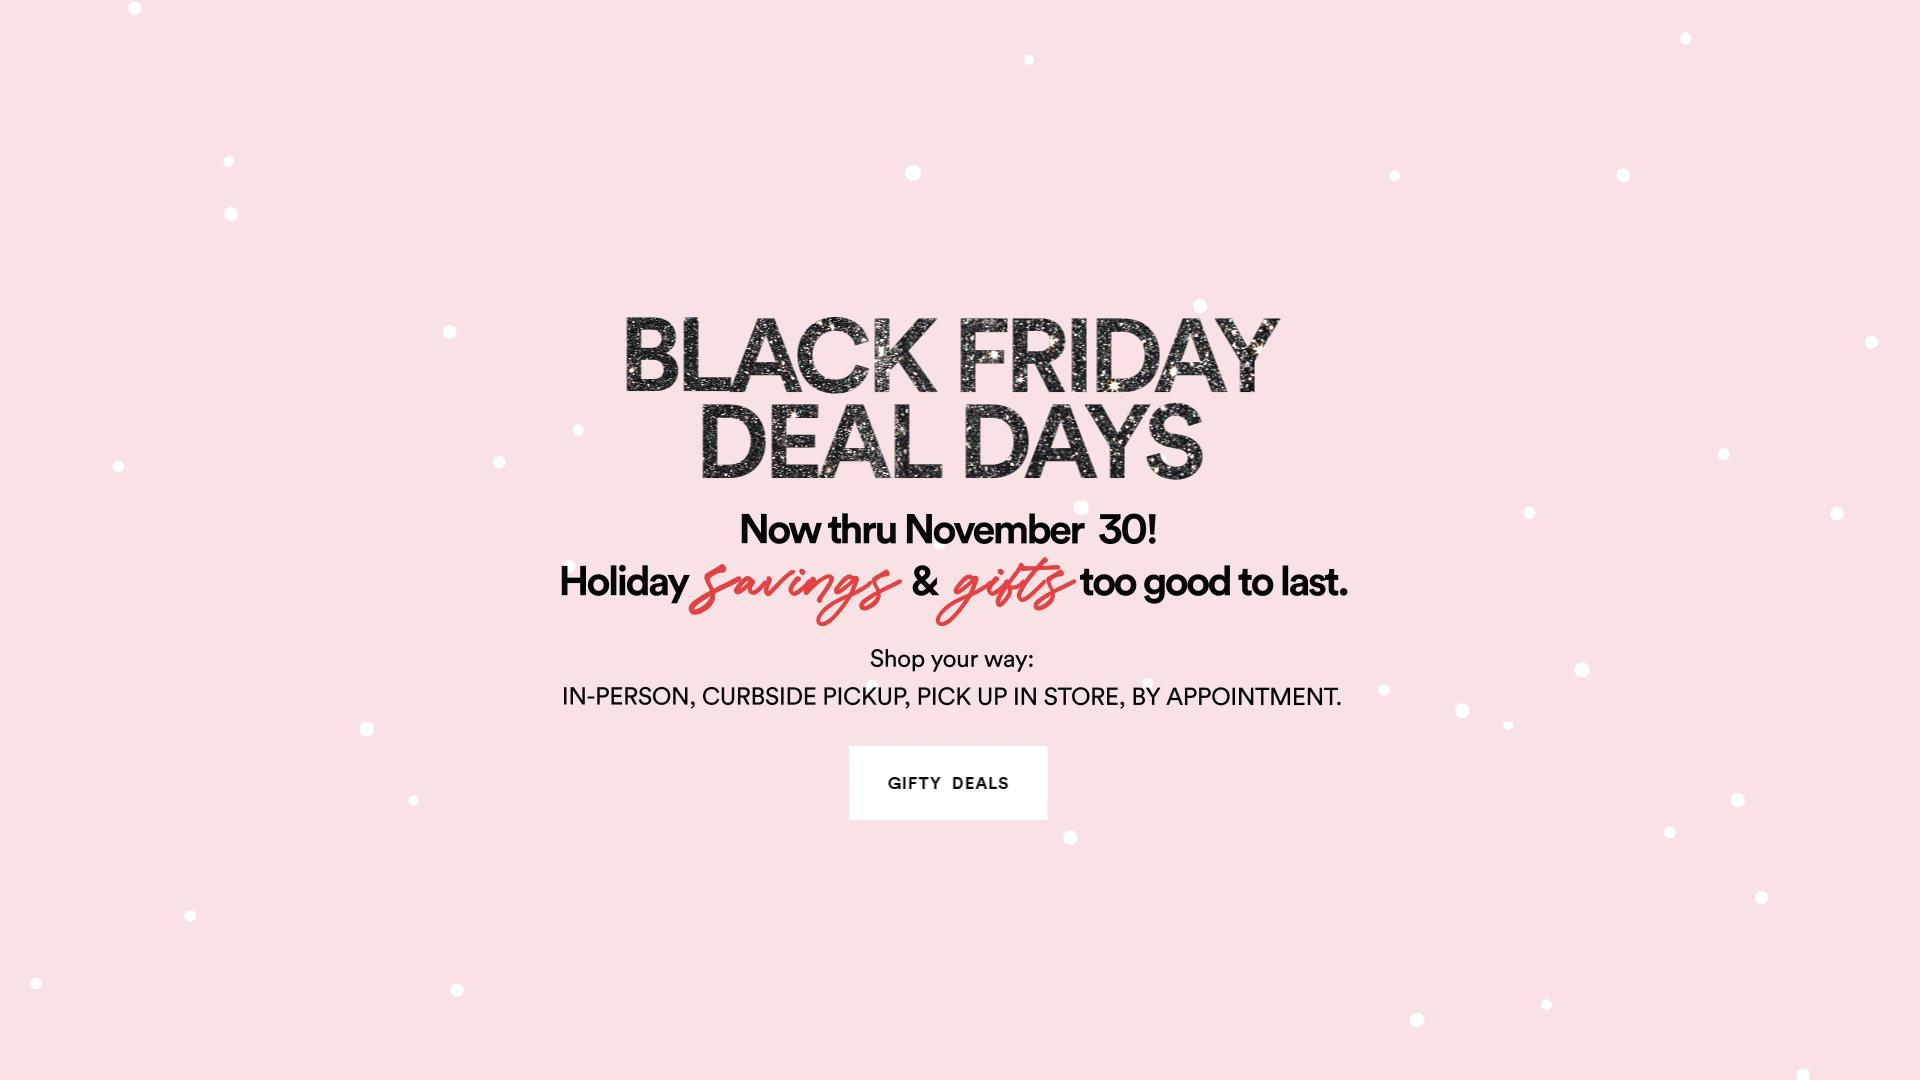 all centers - hero - black friday deal days image